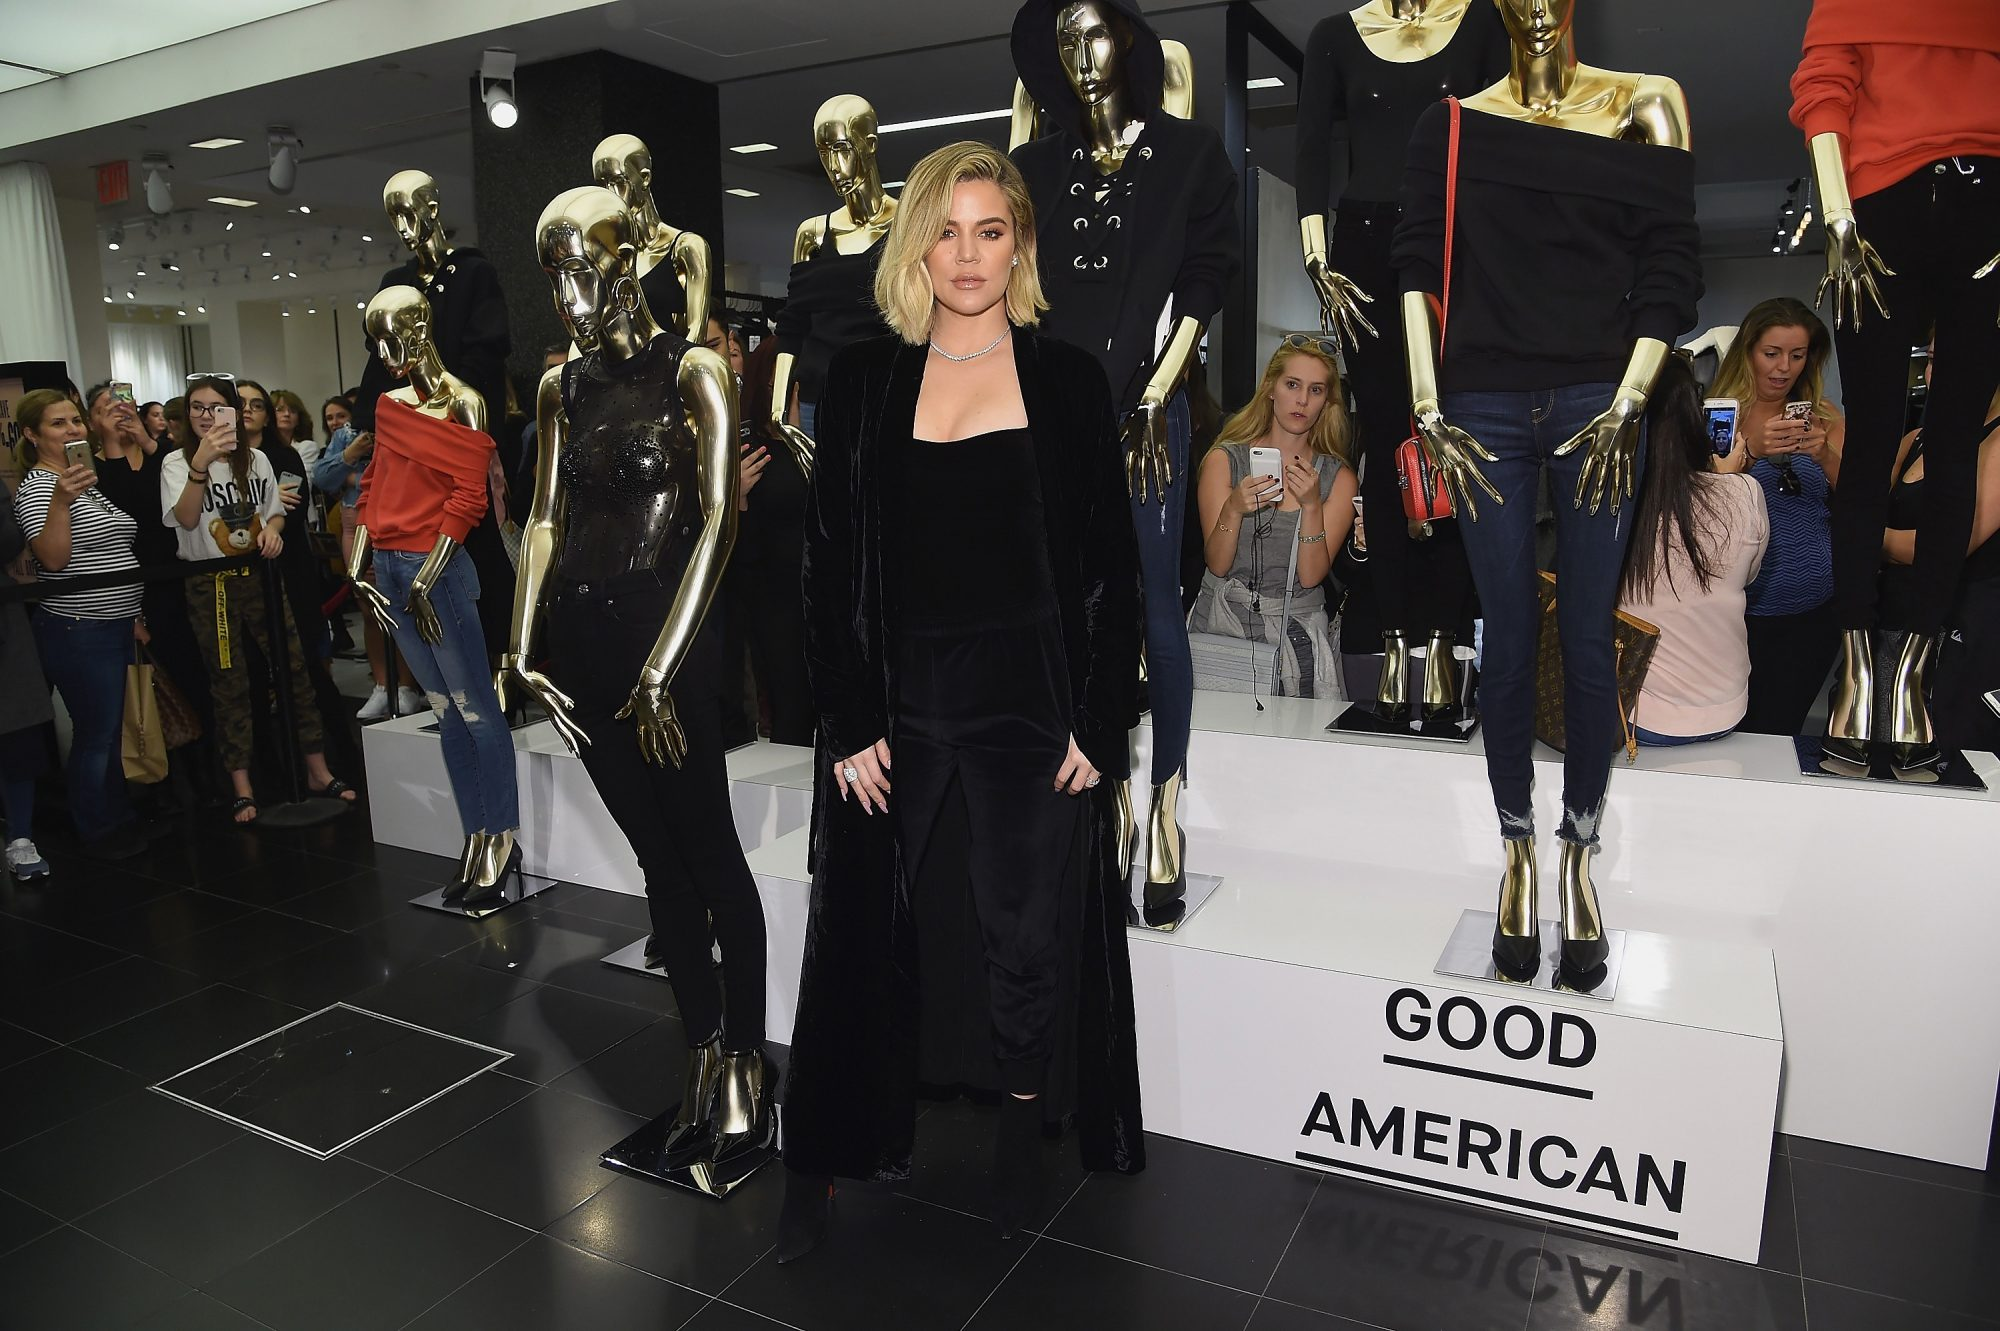 Photo of Khloe Kardashian at the Launch of Her Good American Clothing Brand